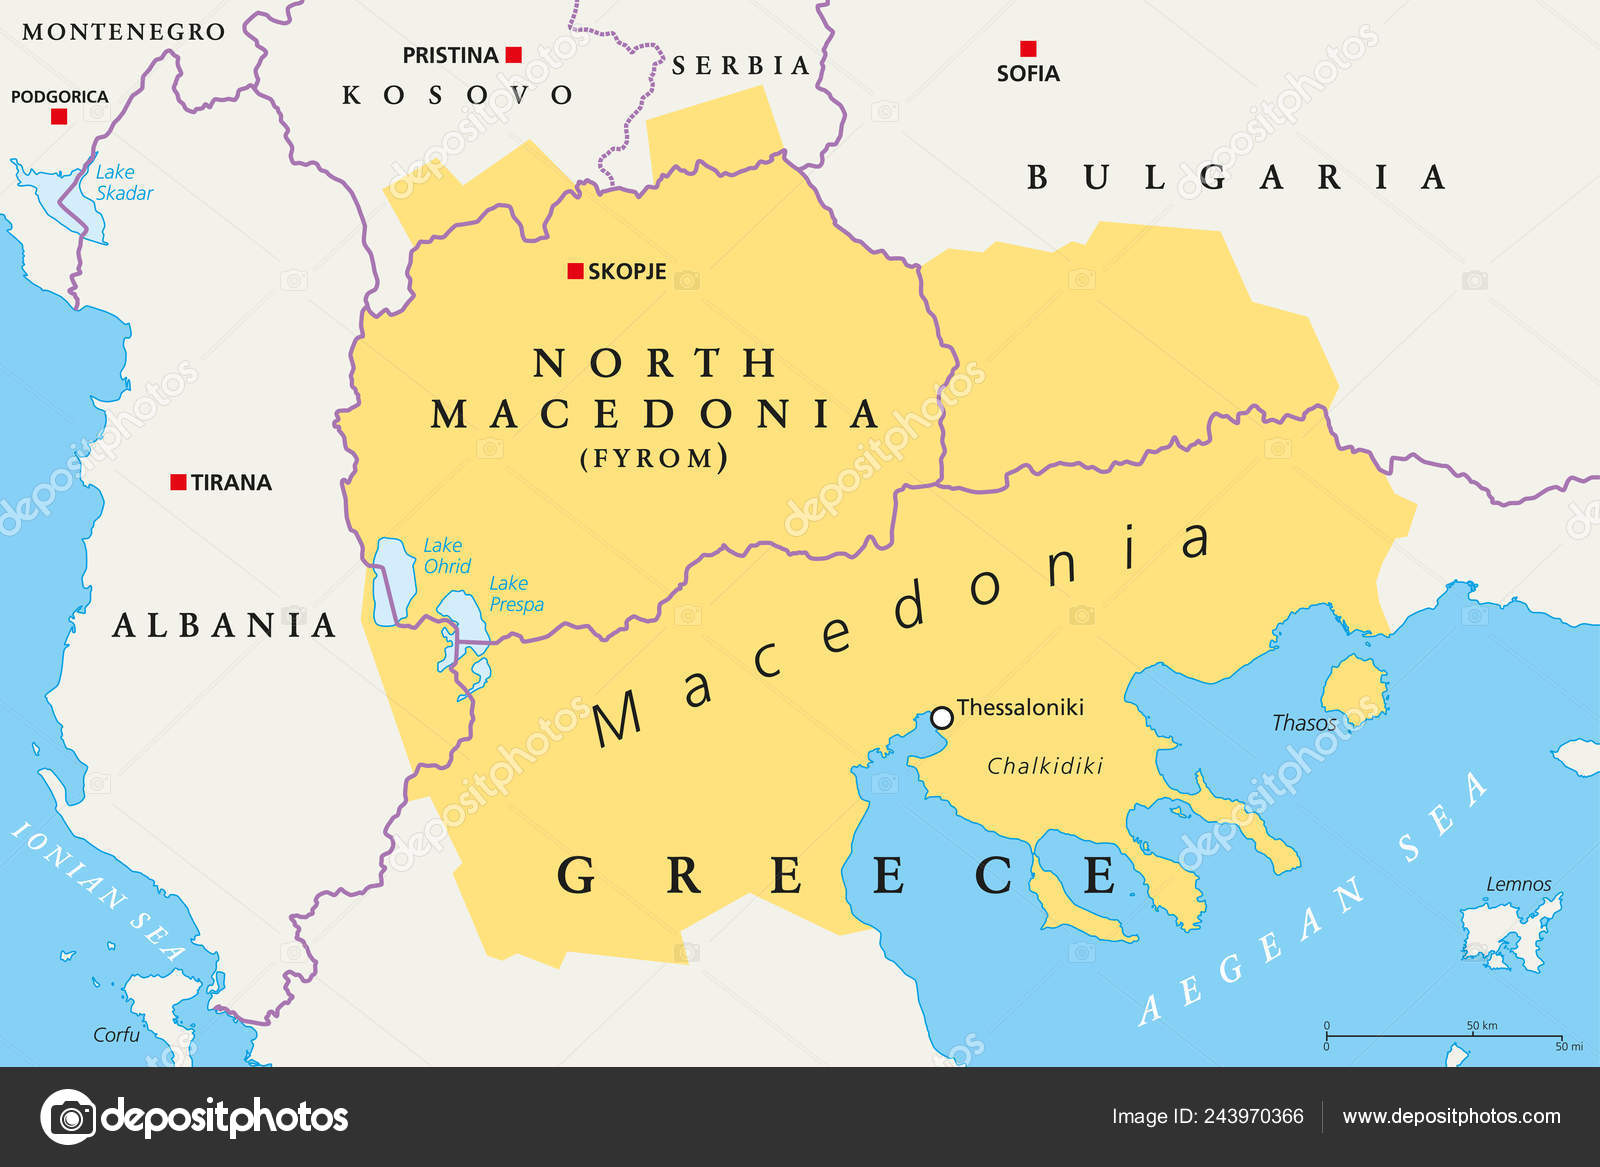 Macedonia Region Political Map Region Balkan Peninsula Southeast